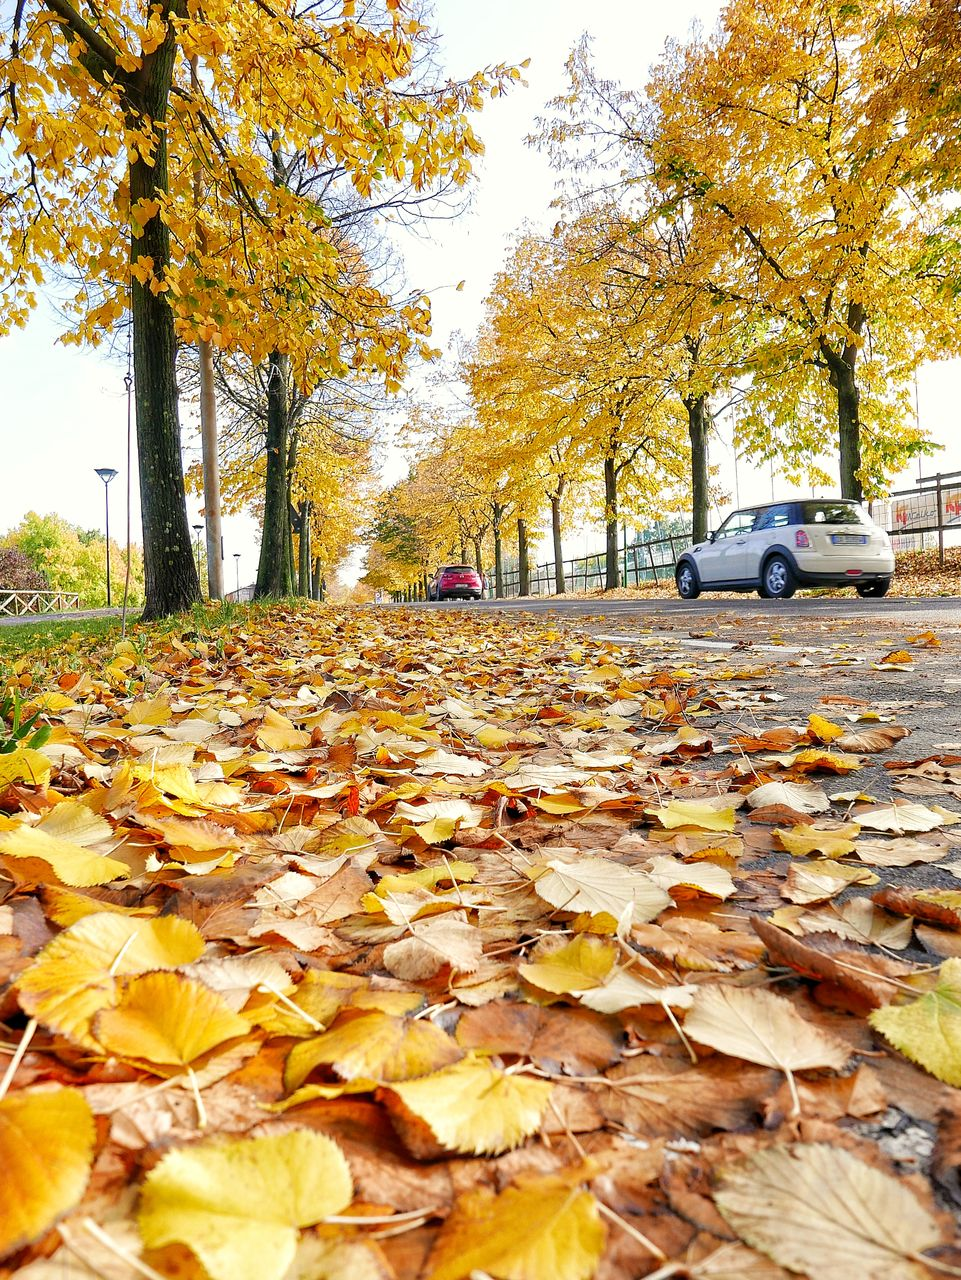 leaf, change, autumn, tree, fallen, nature, leaves, dry, yellow, beauty in nature, land vehicle, transportation, day, the way forward, car, outdoors, tranquility, scenics, mode of transport, no people, park - man made space, branch, tree trunk, maple, fragility, close-up